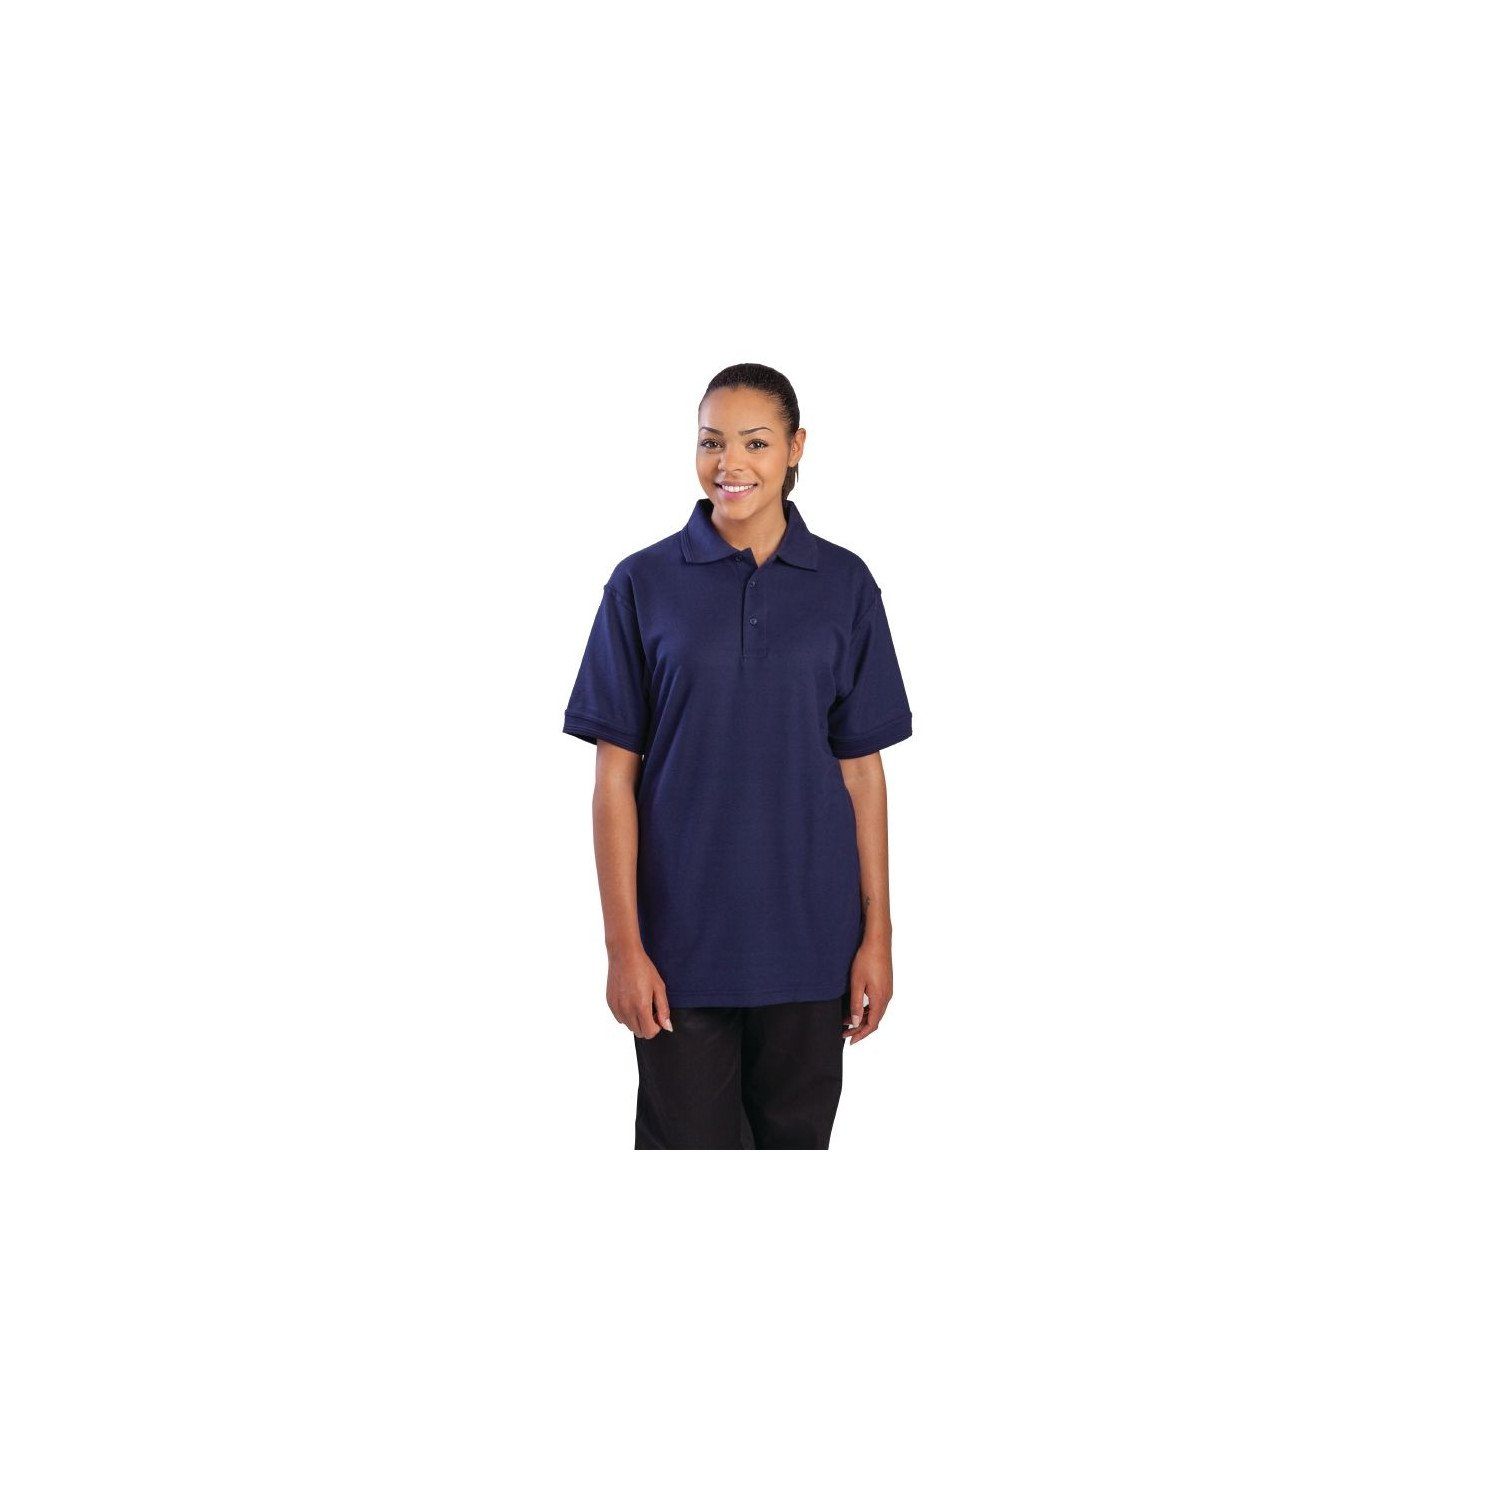 Polo 65% polyester & 35% coton bleu marine XL EQUIPEMENT DIRECT Nisbets Vêtements